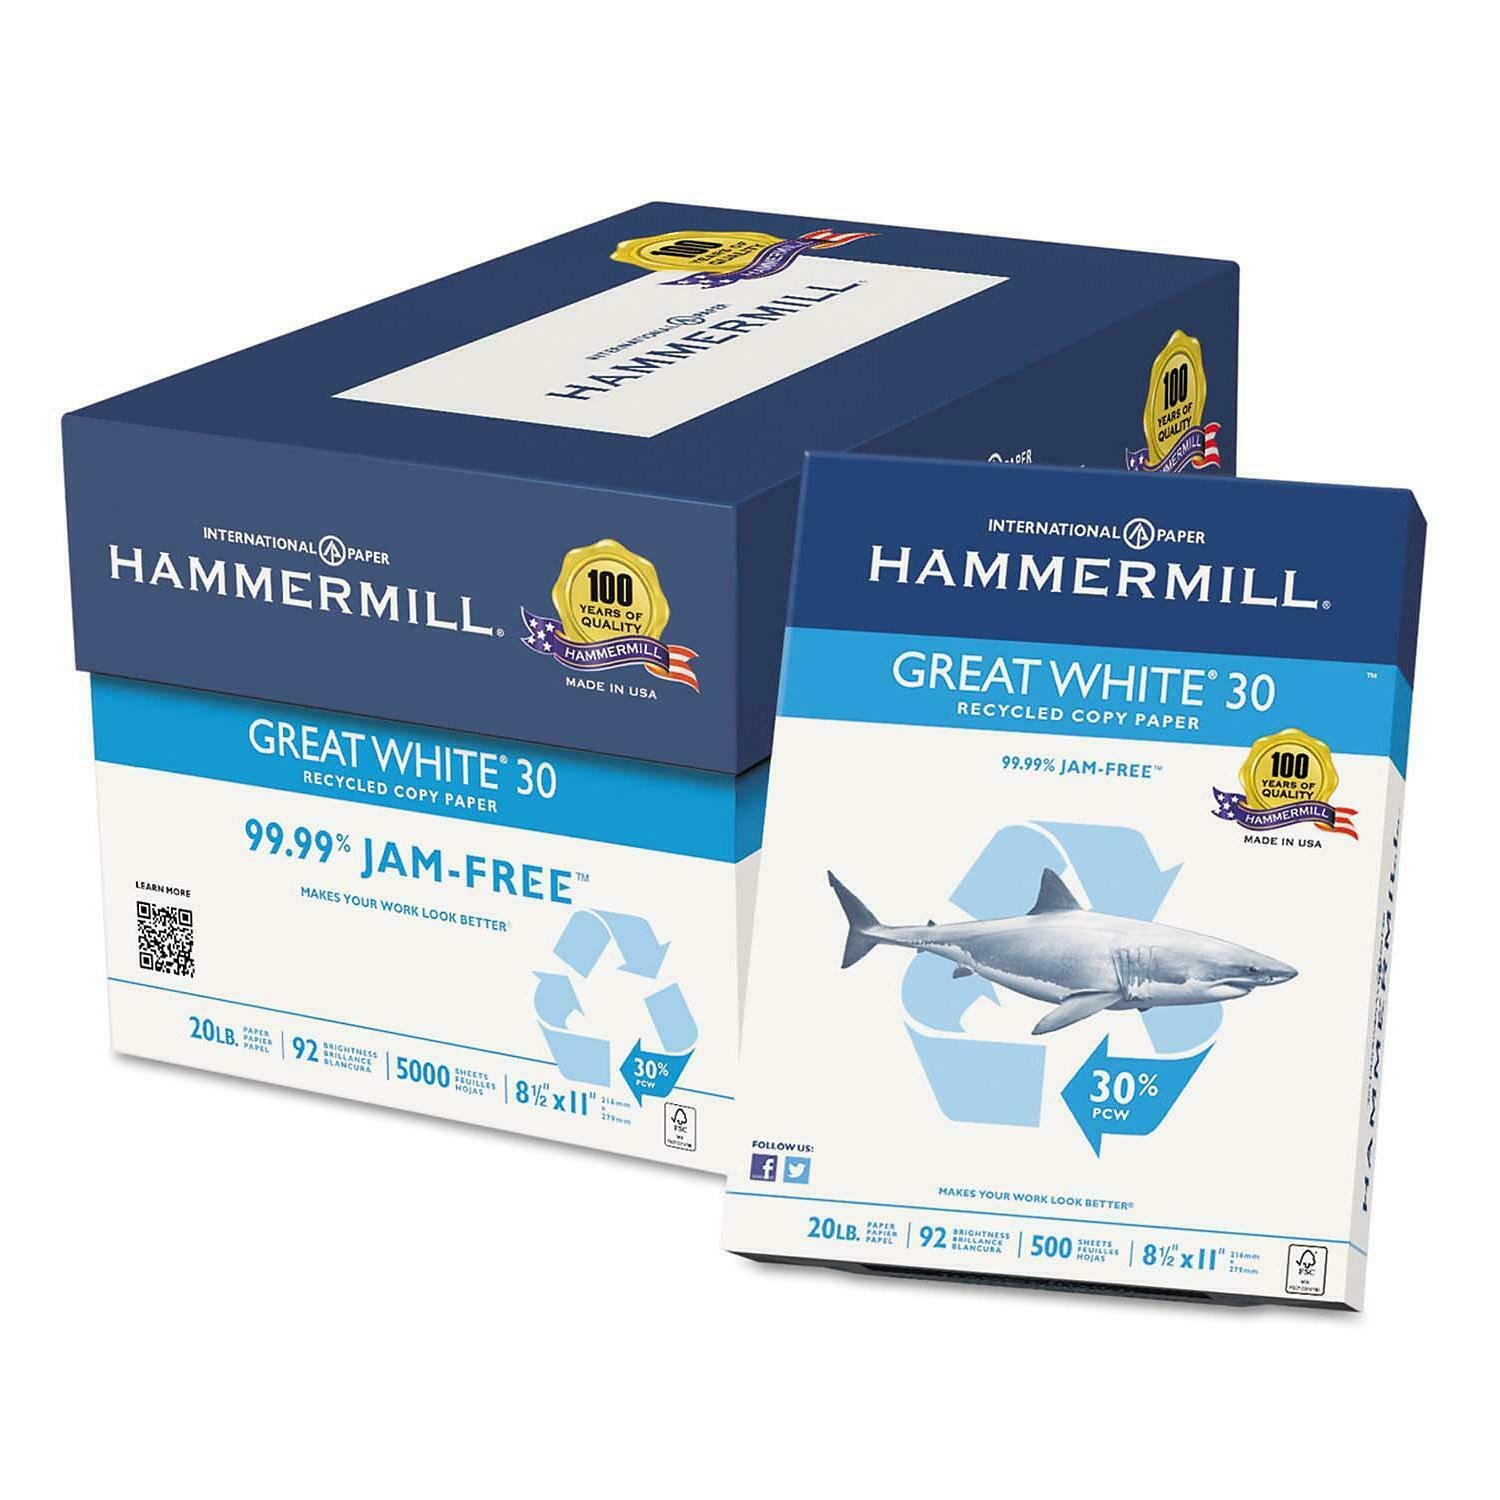 Hammermill - Great White 30% Recycled Copy Paper, 20lb, 92 Bright,